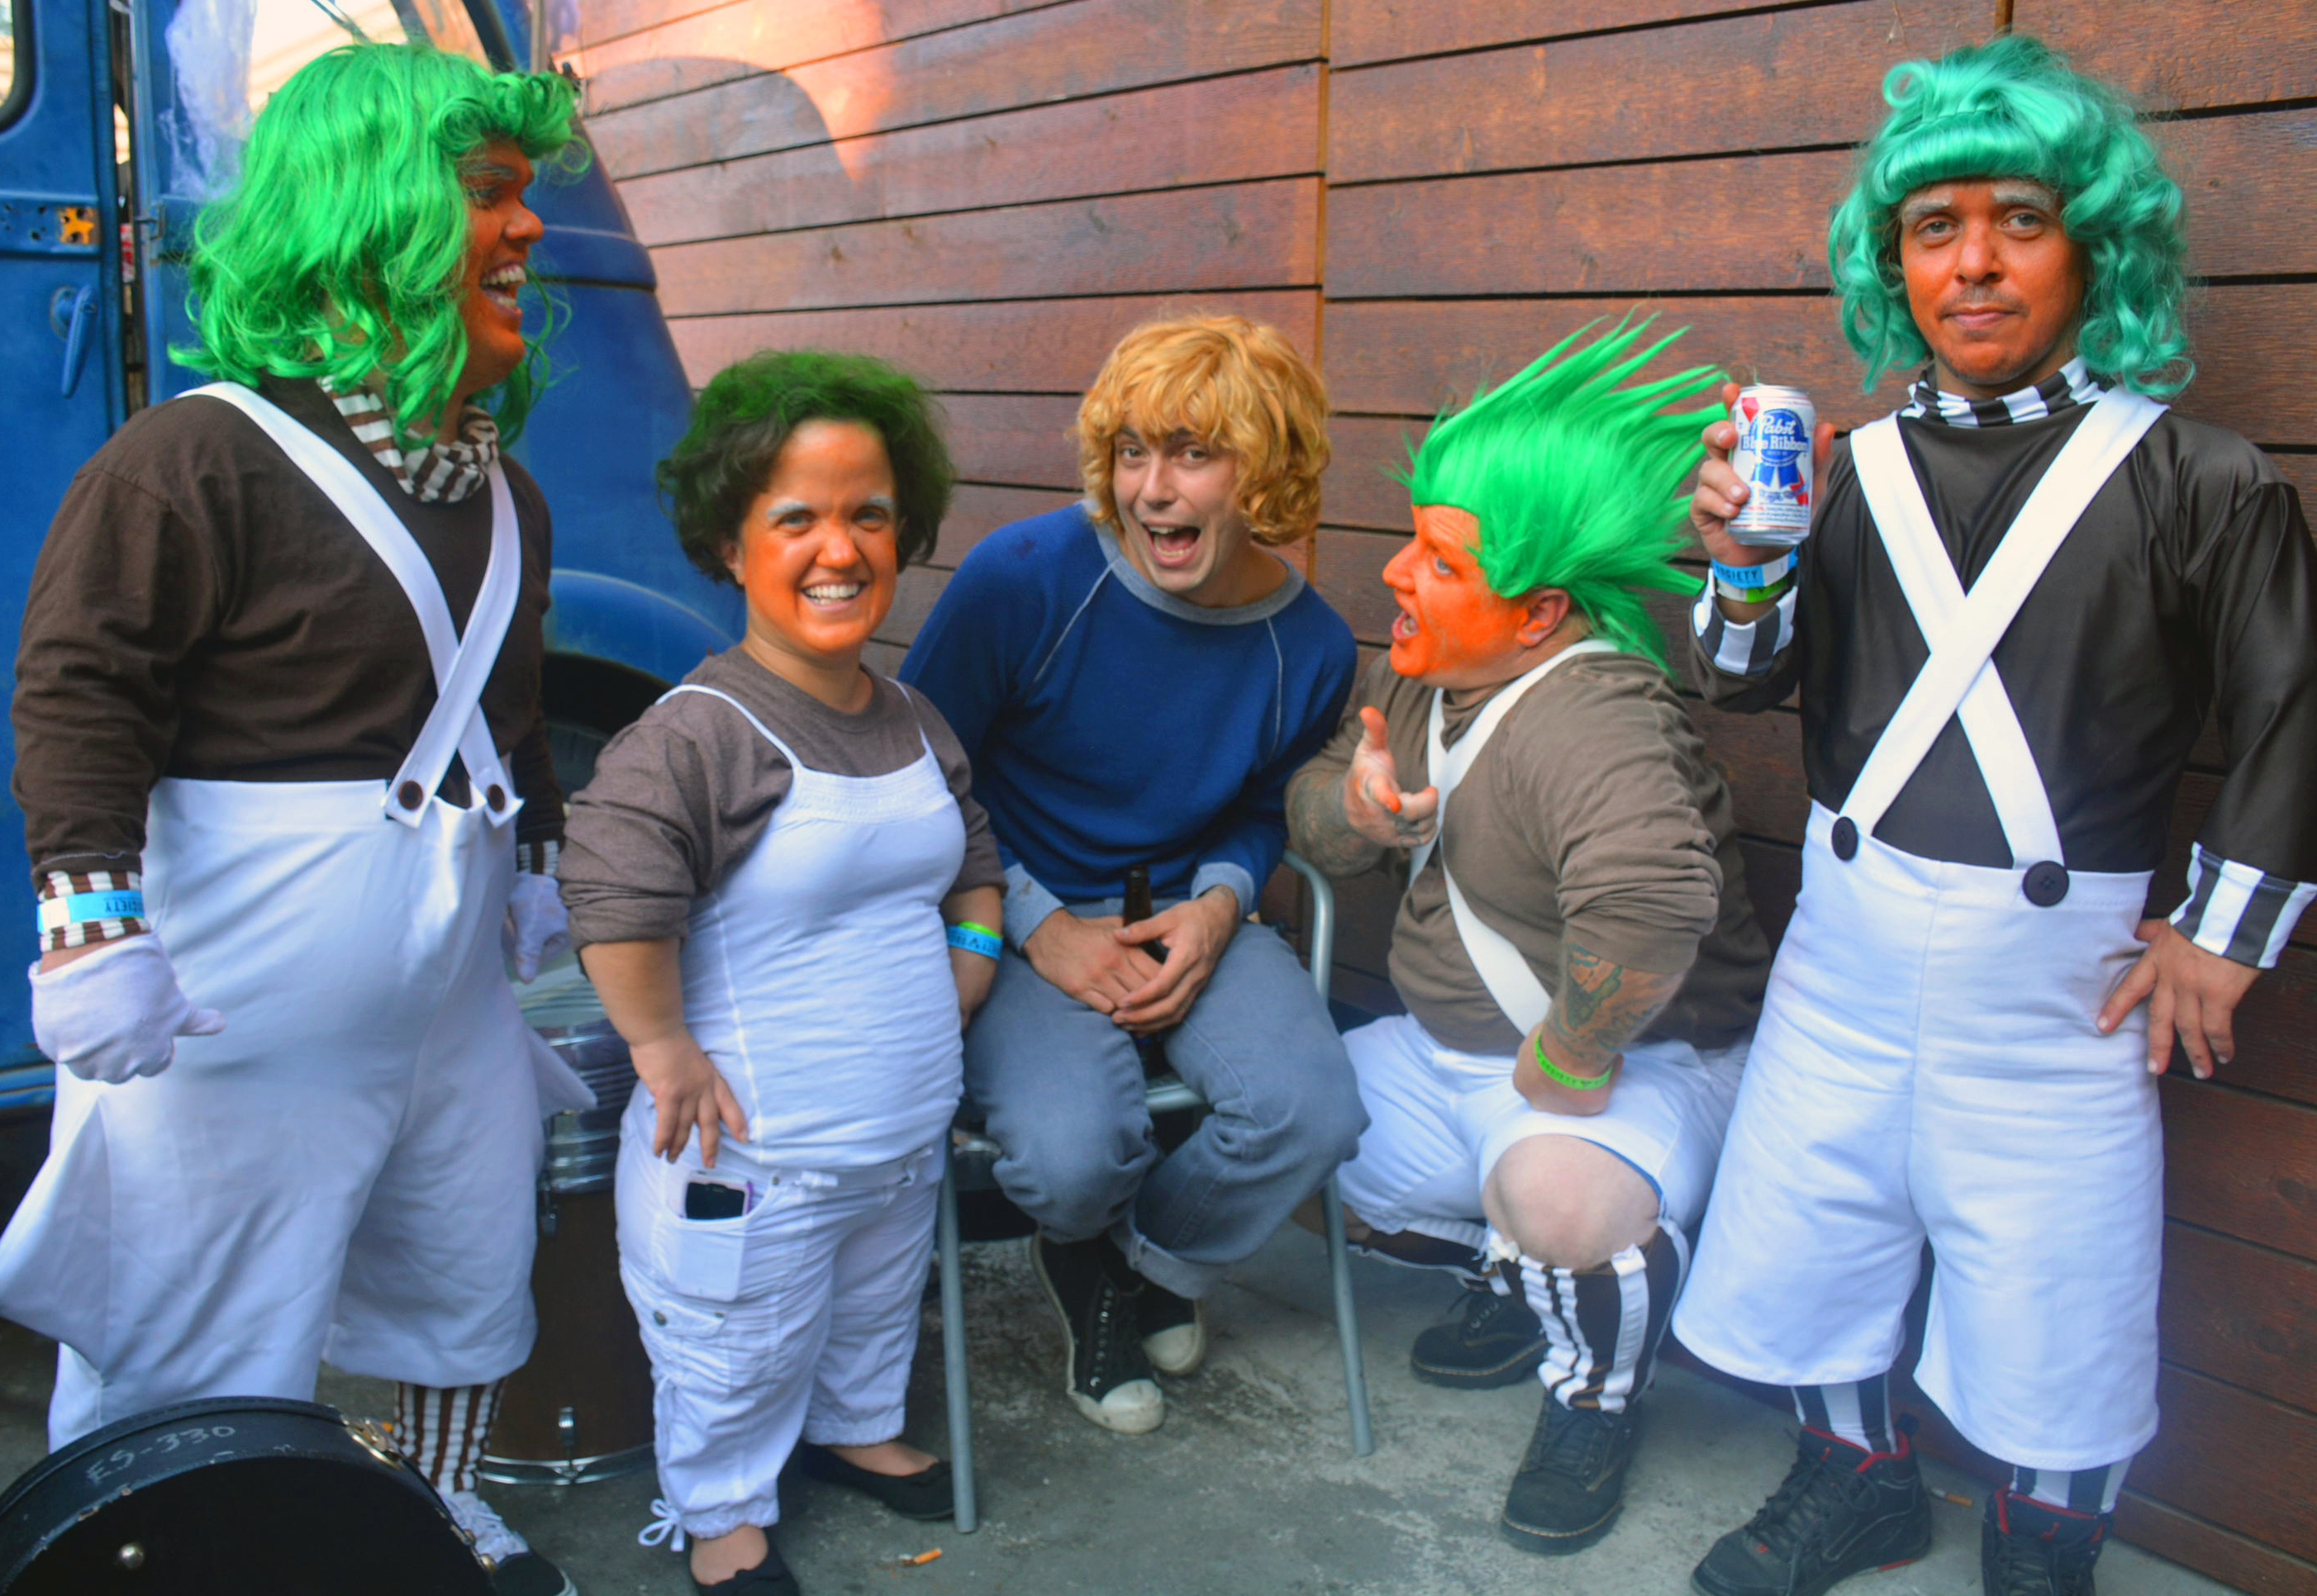 Brooks with Oompa Loompas // Photo by Samuel Perez